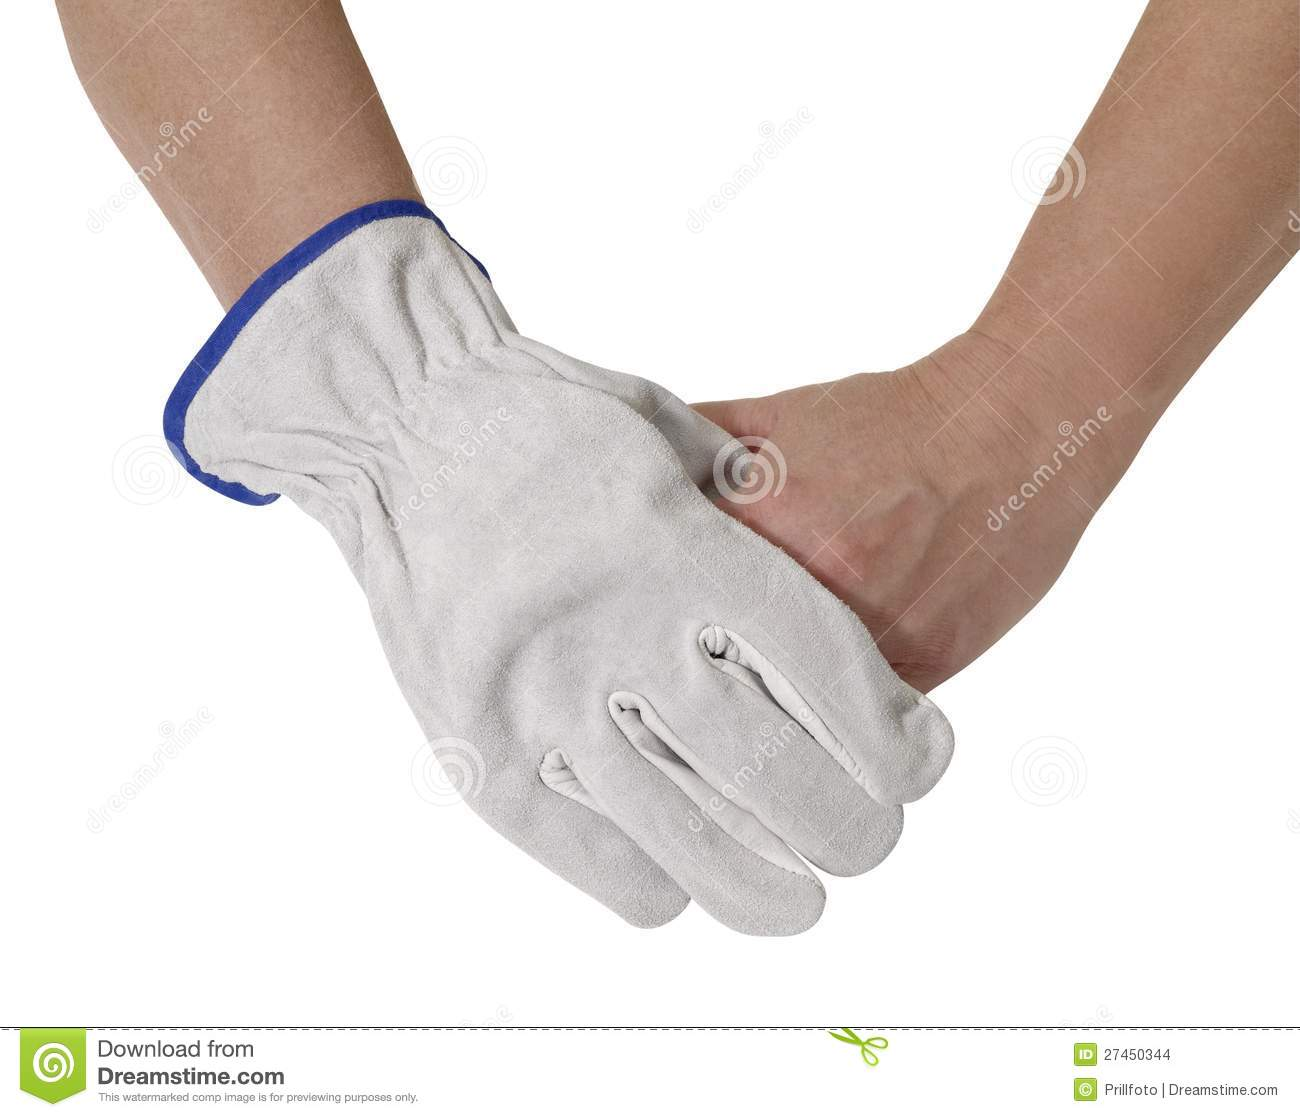 Hands Holding Each Other One Gloved With A Light Grey Working Glove